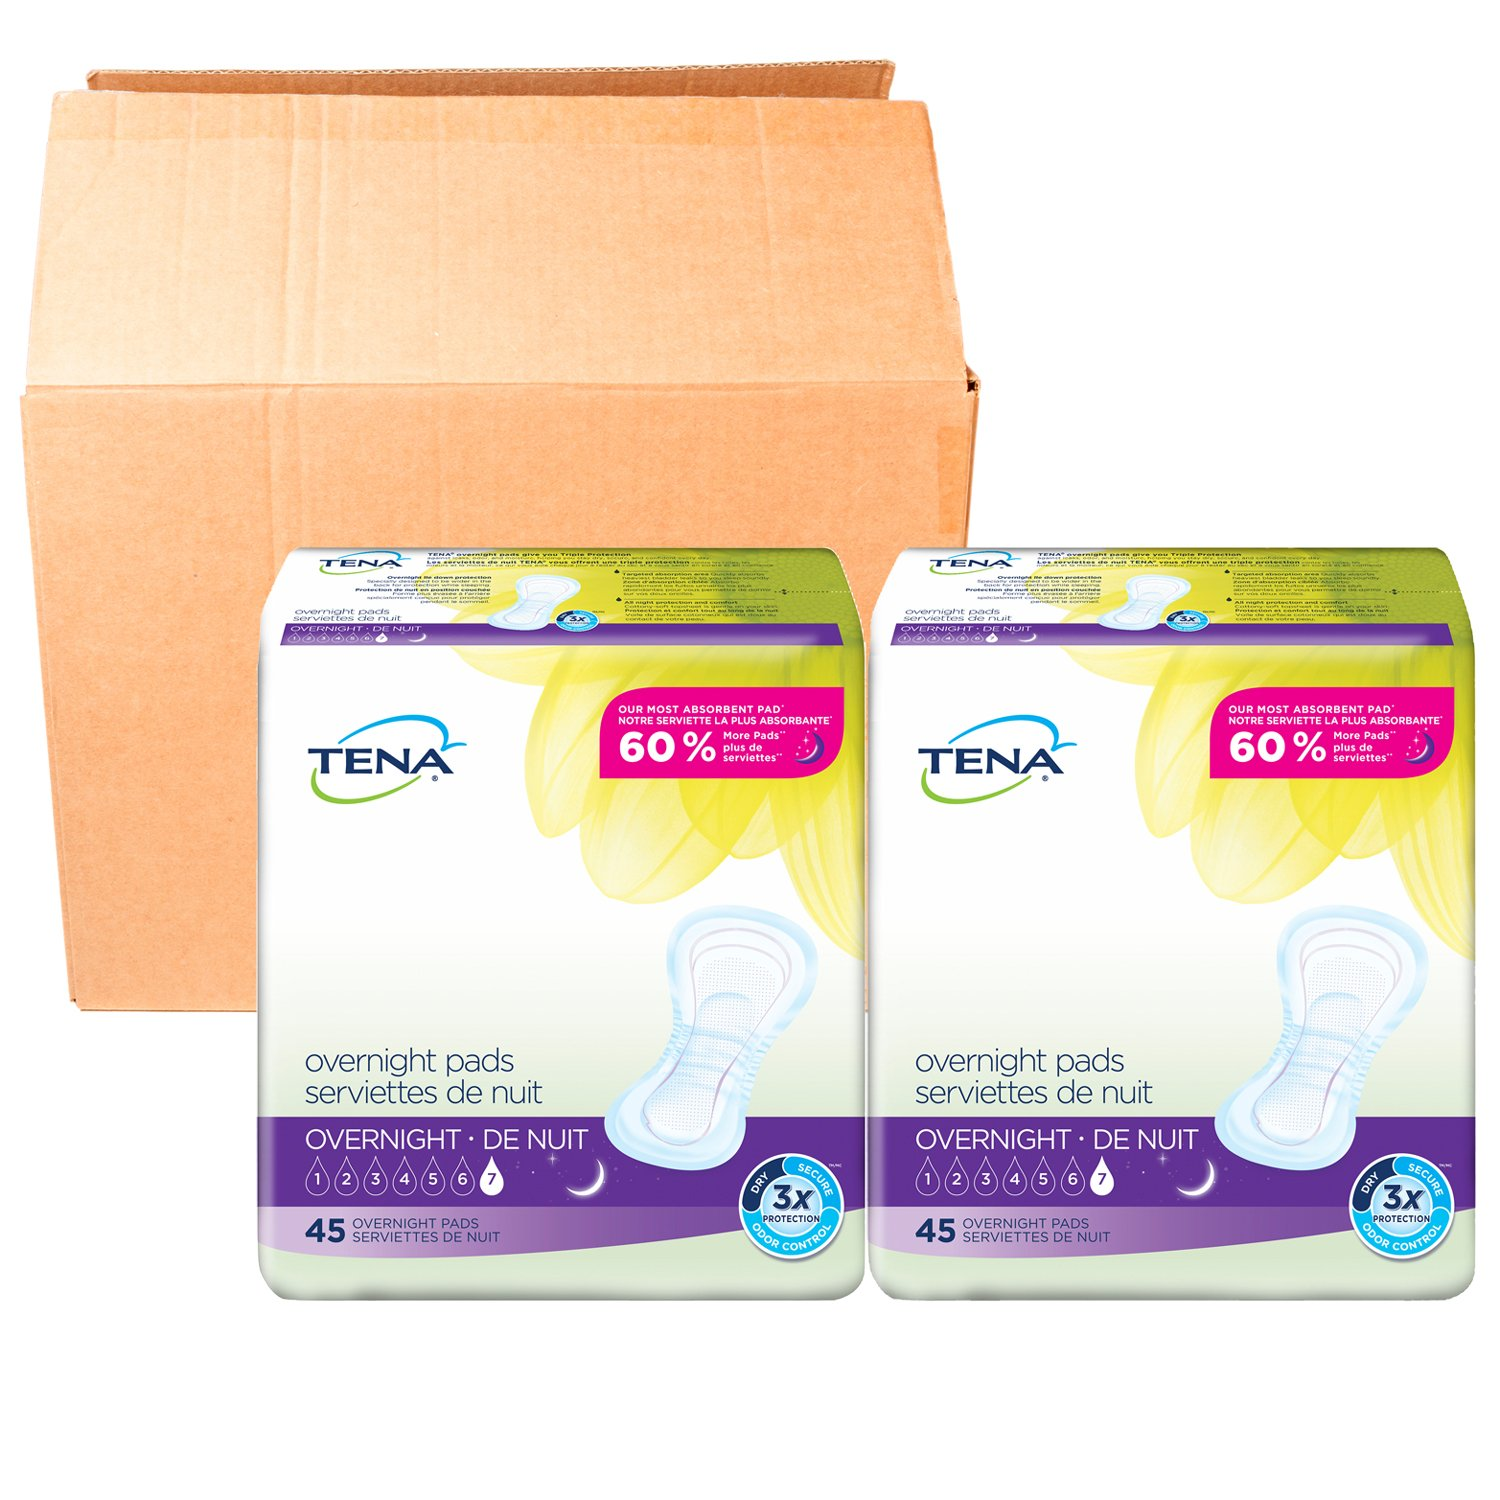 Tena Incontinence Pads For Women, Overnight, 90 Count product image